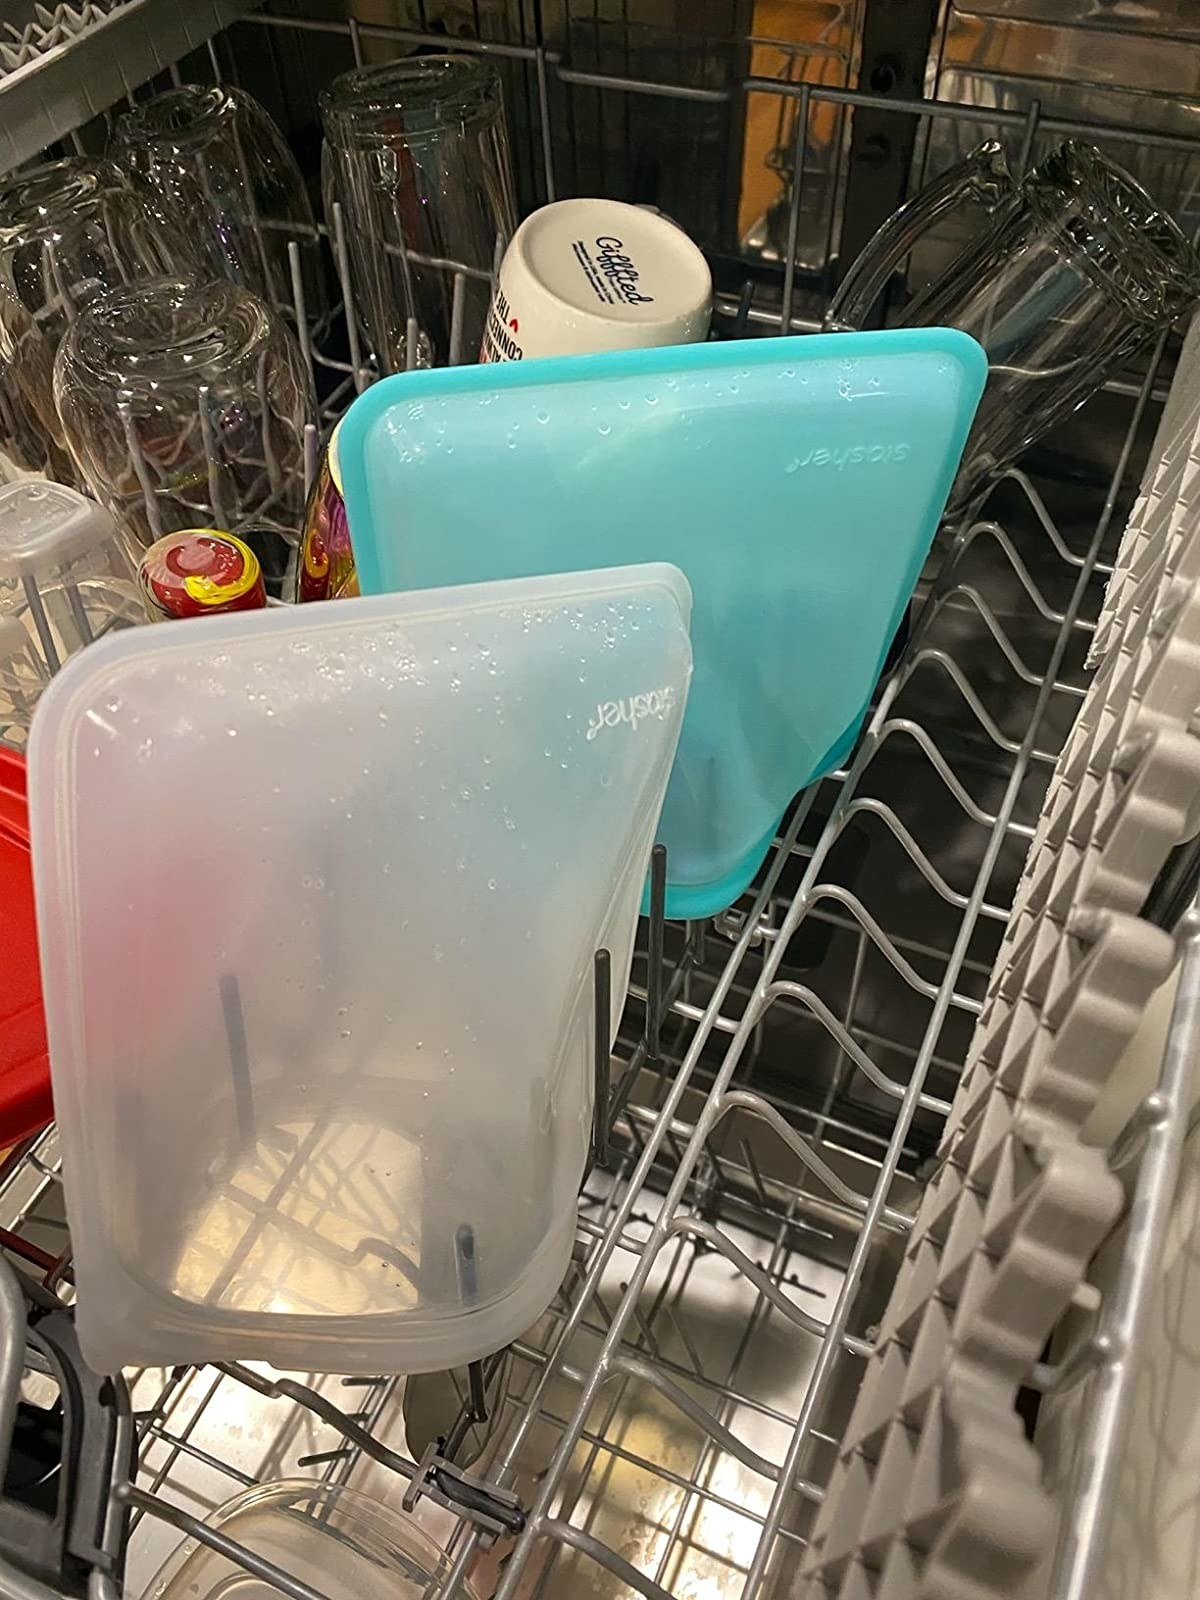 a reviewer's stasher bags in the dishwasher